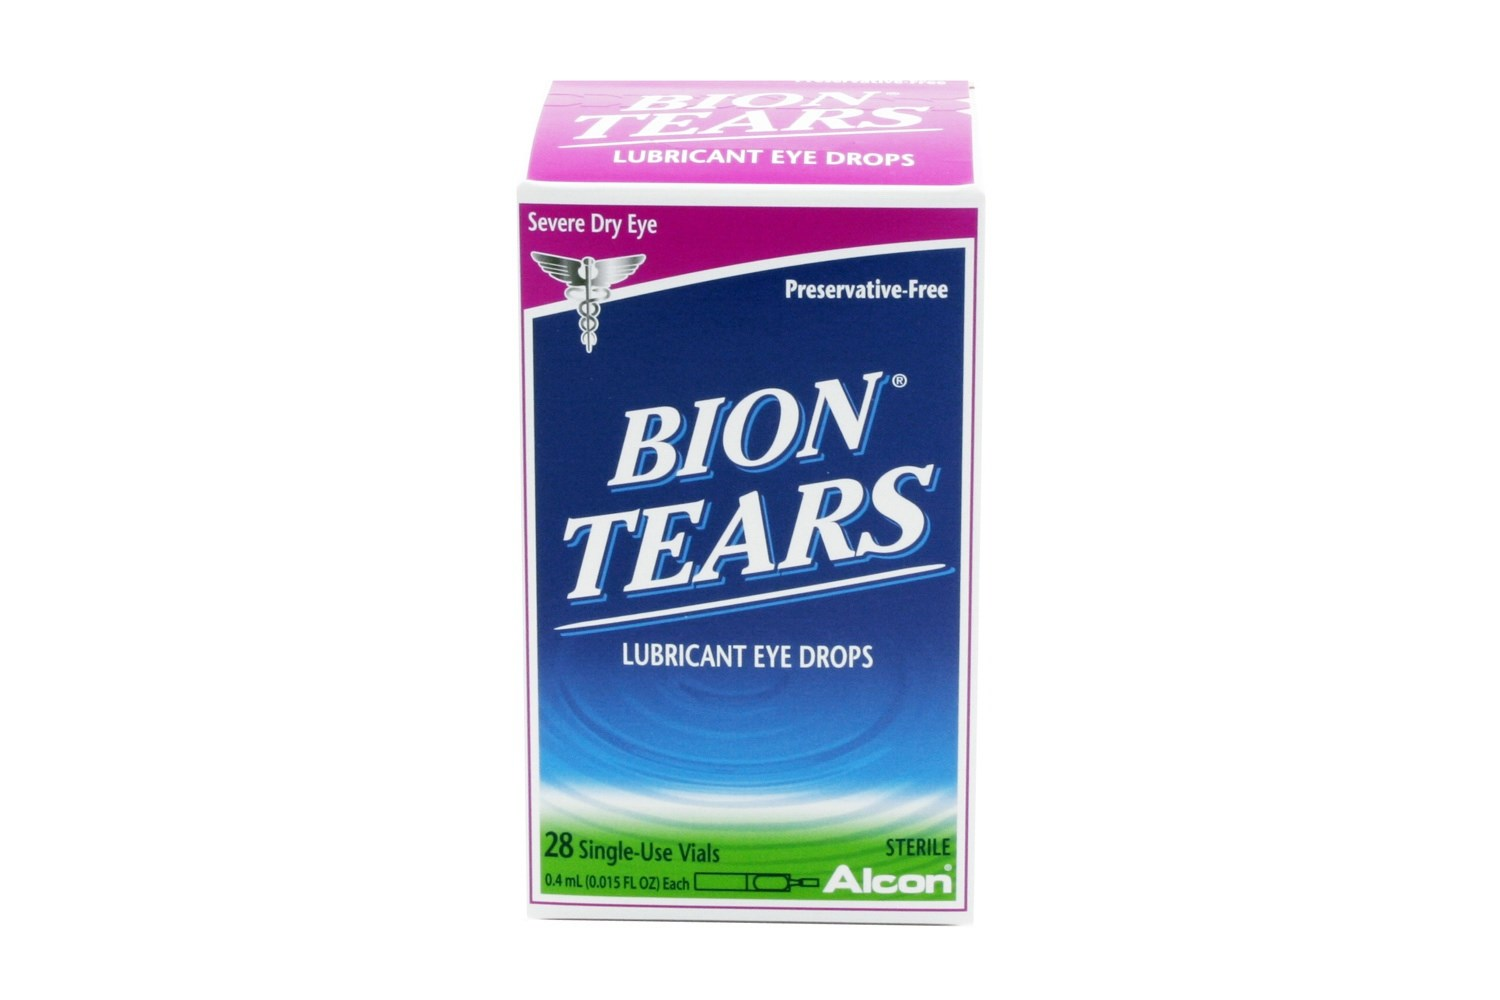 Bion Tears Lubricant Eye Drops 28 ct